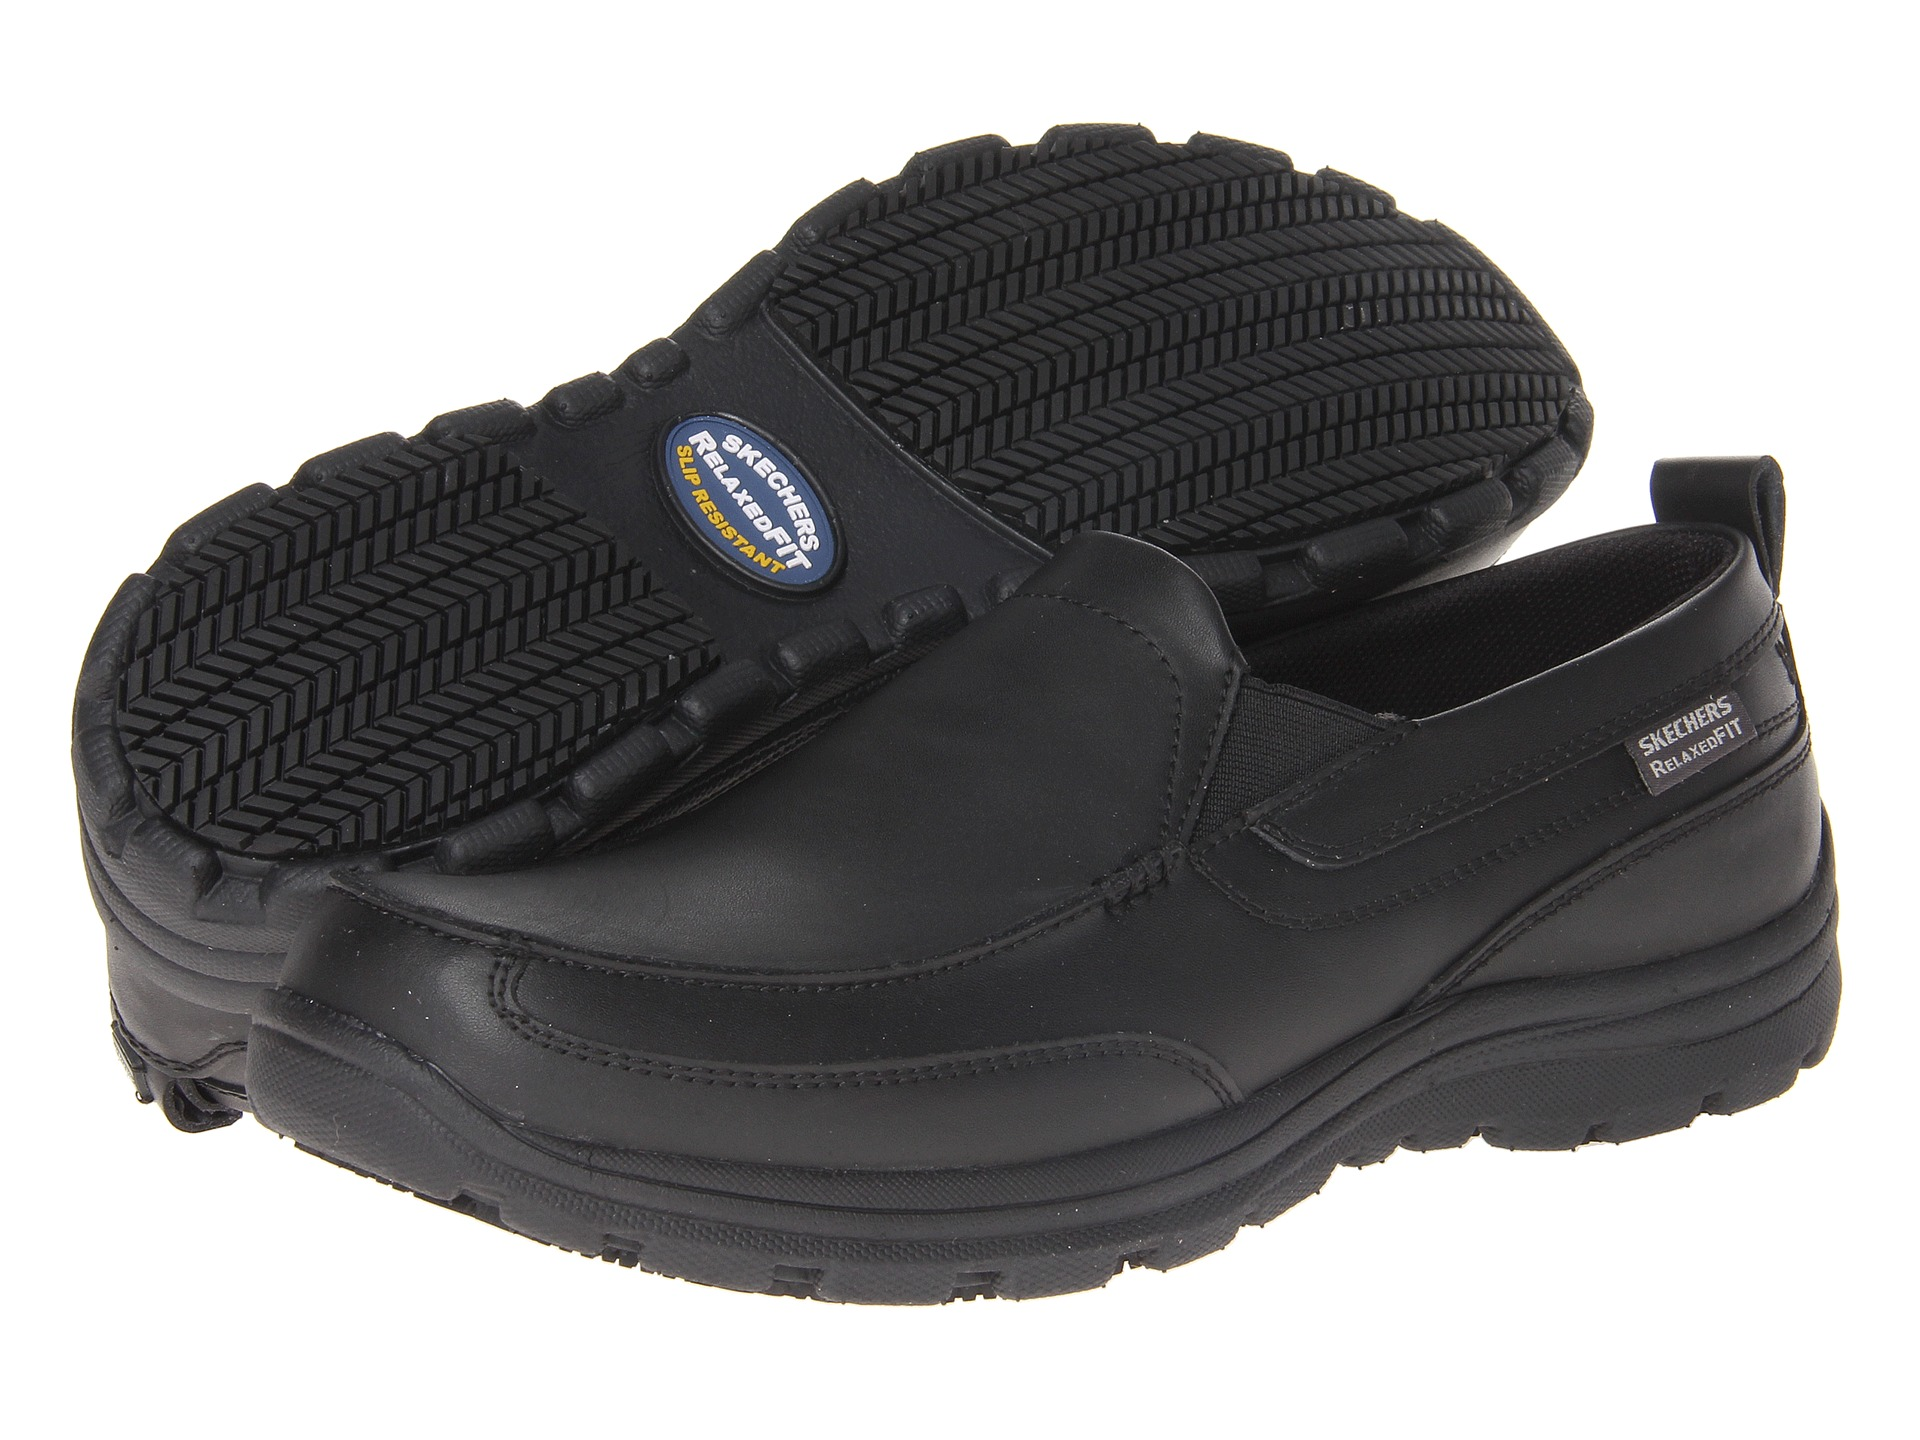 SKECHERS Work Hobbes - Zappos.com Free Shipping BOTH Ways